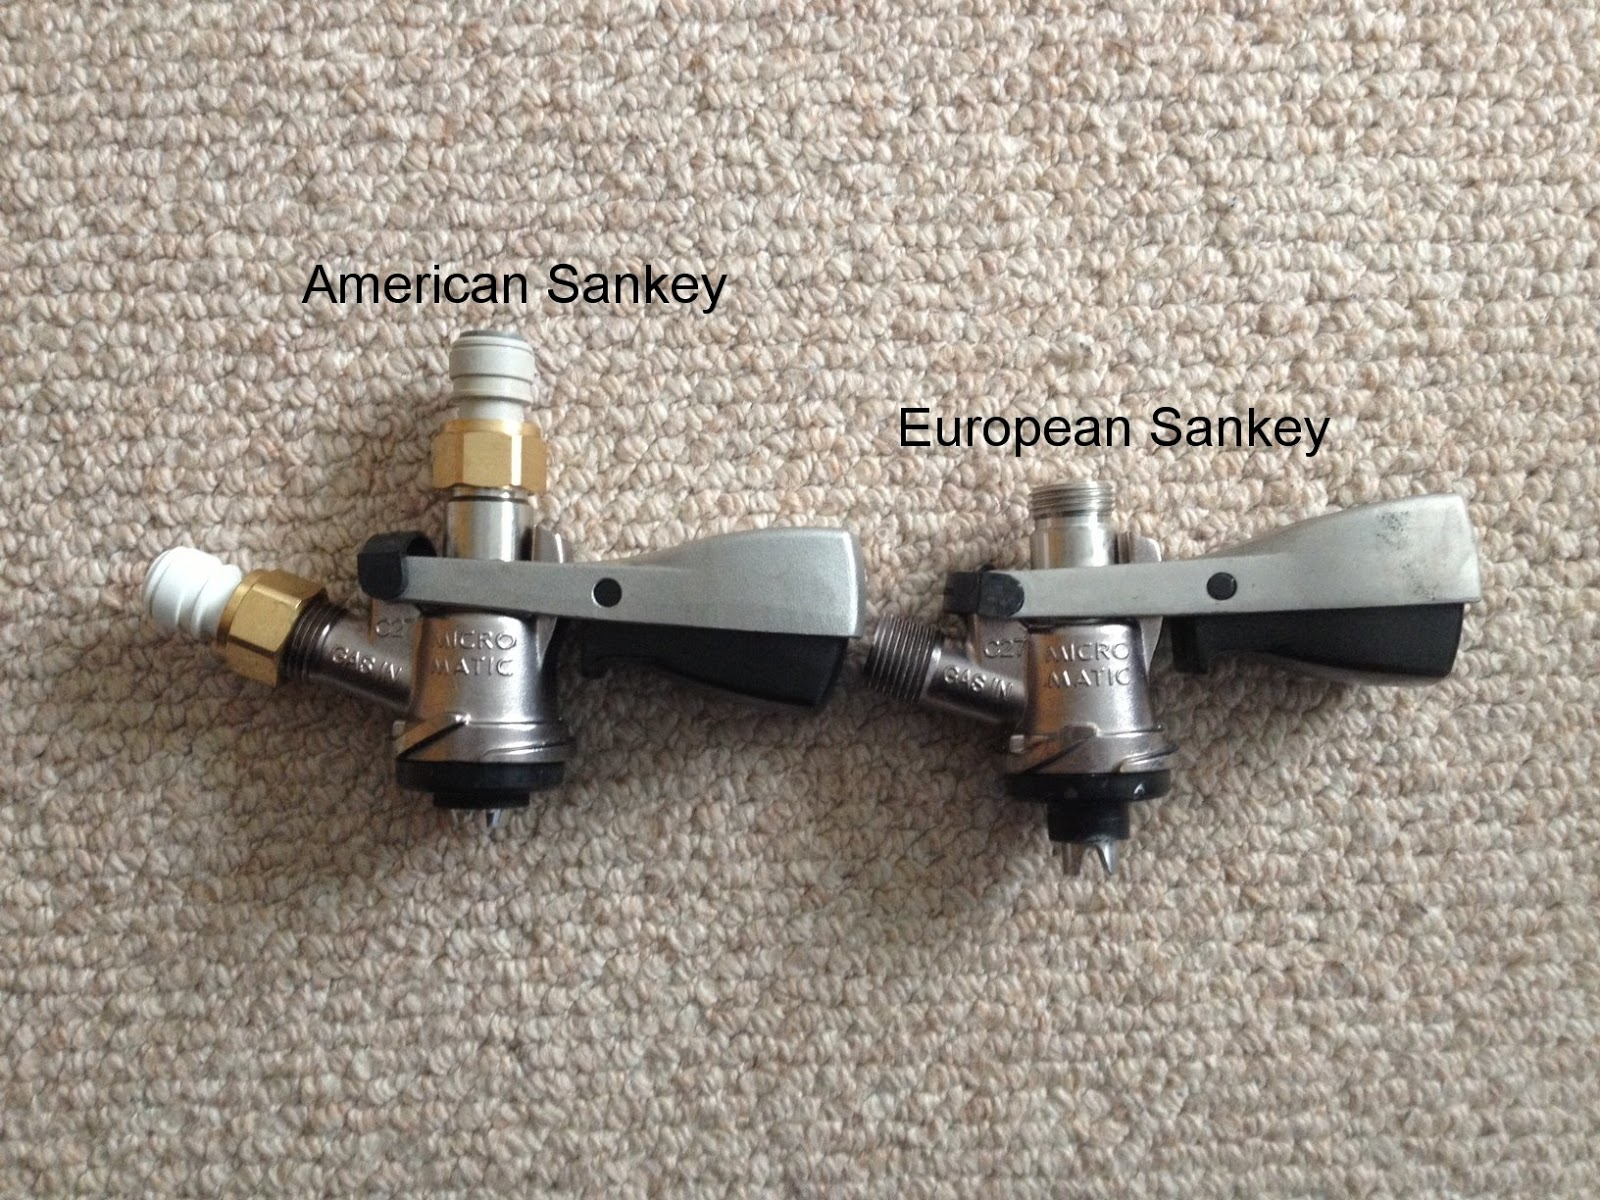 American Sankey k fitting